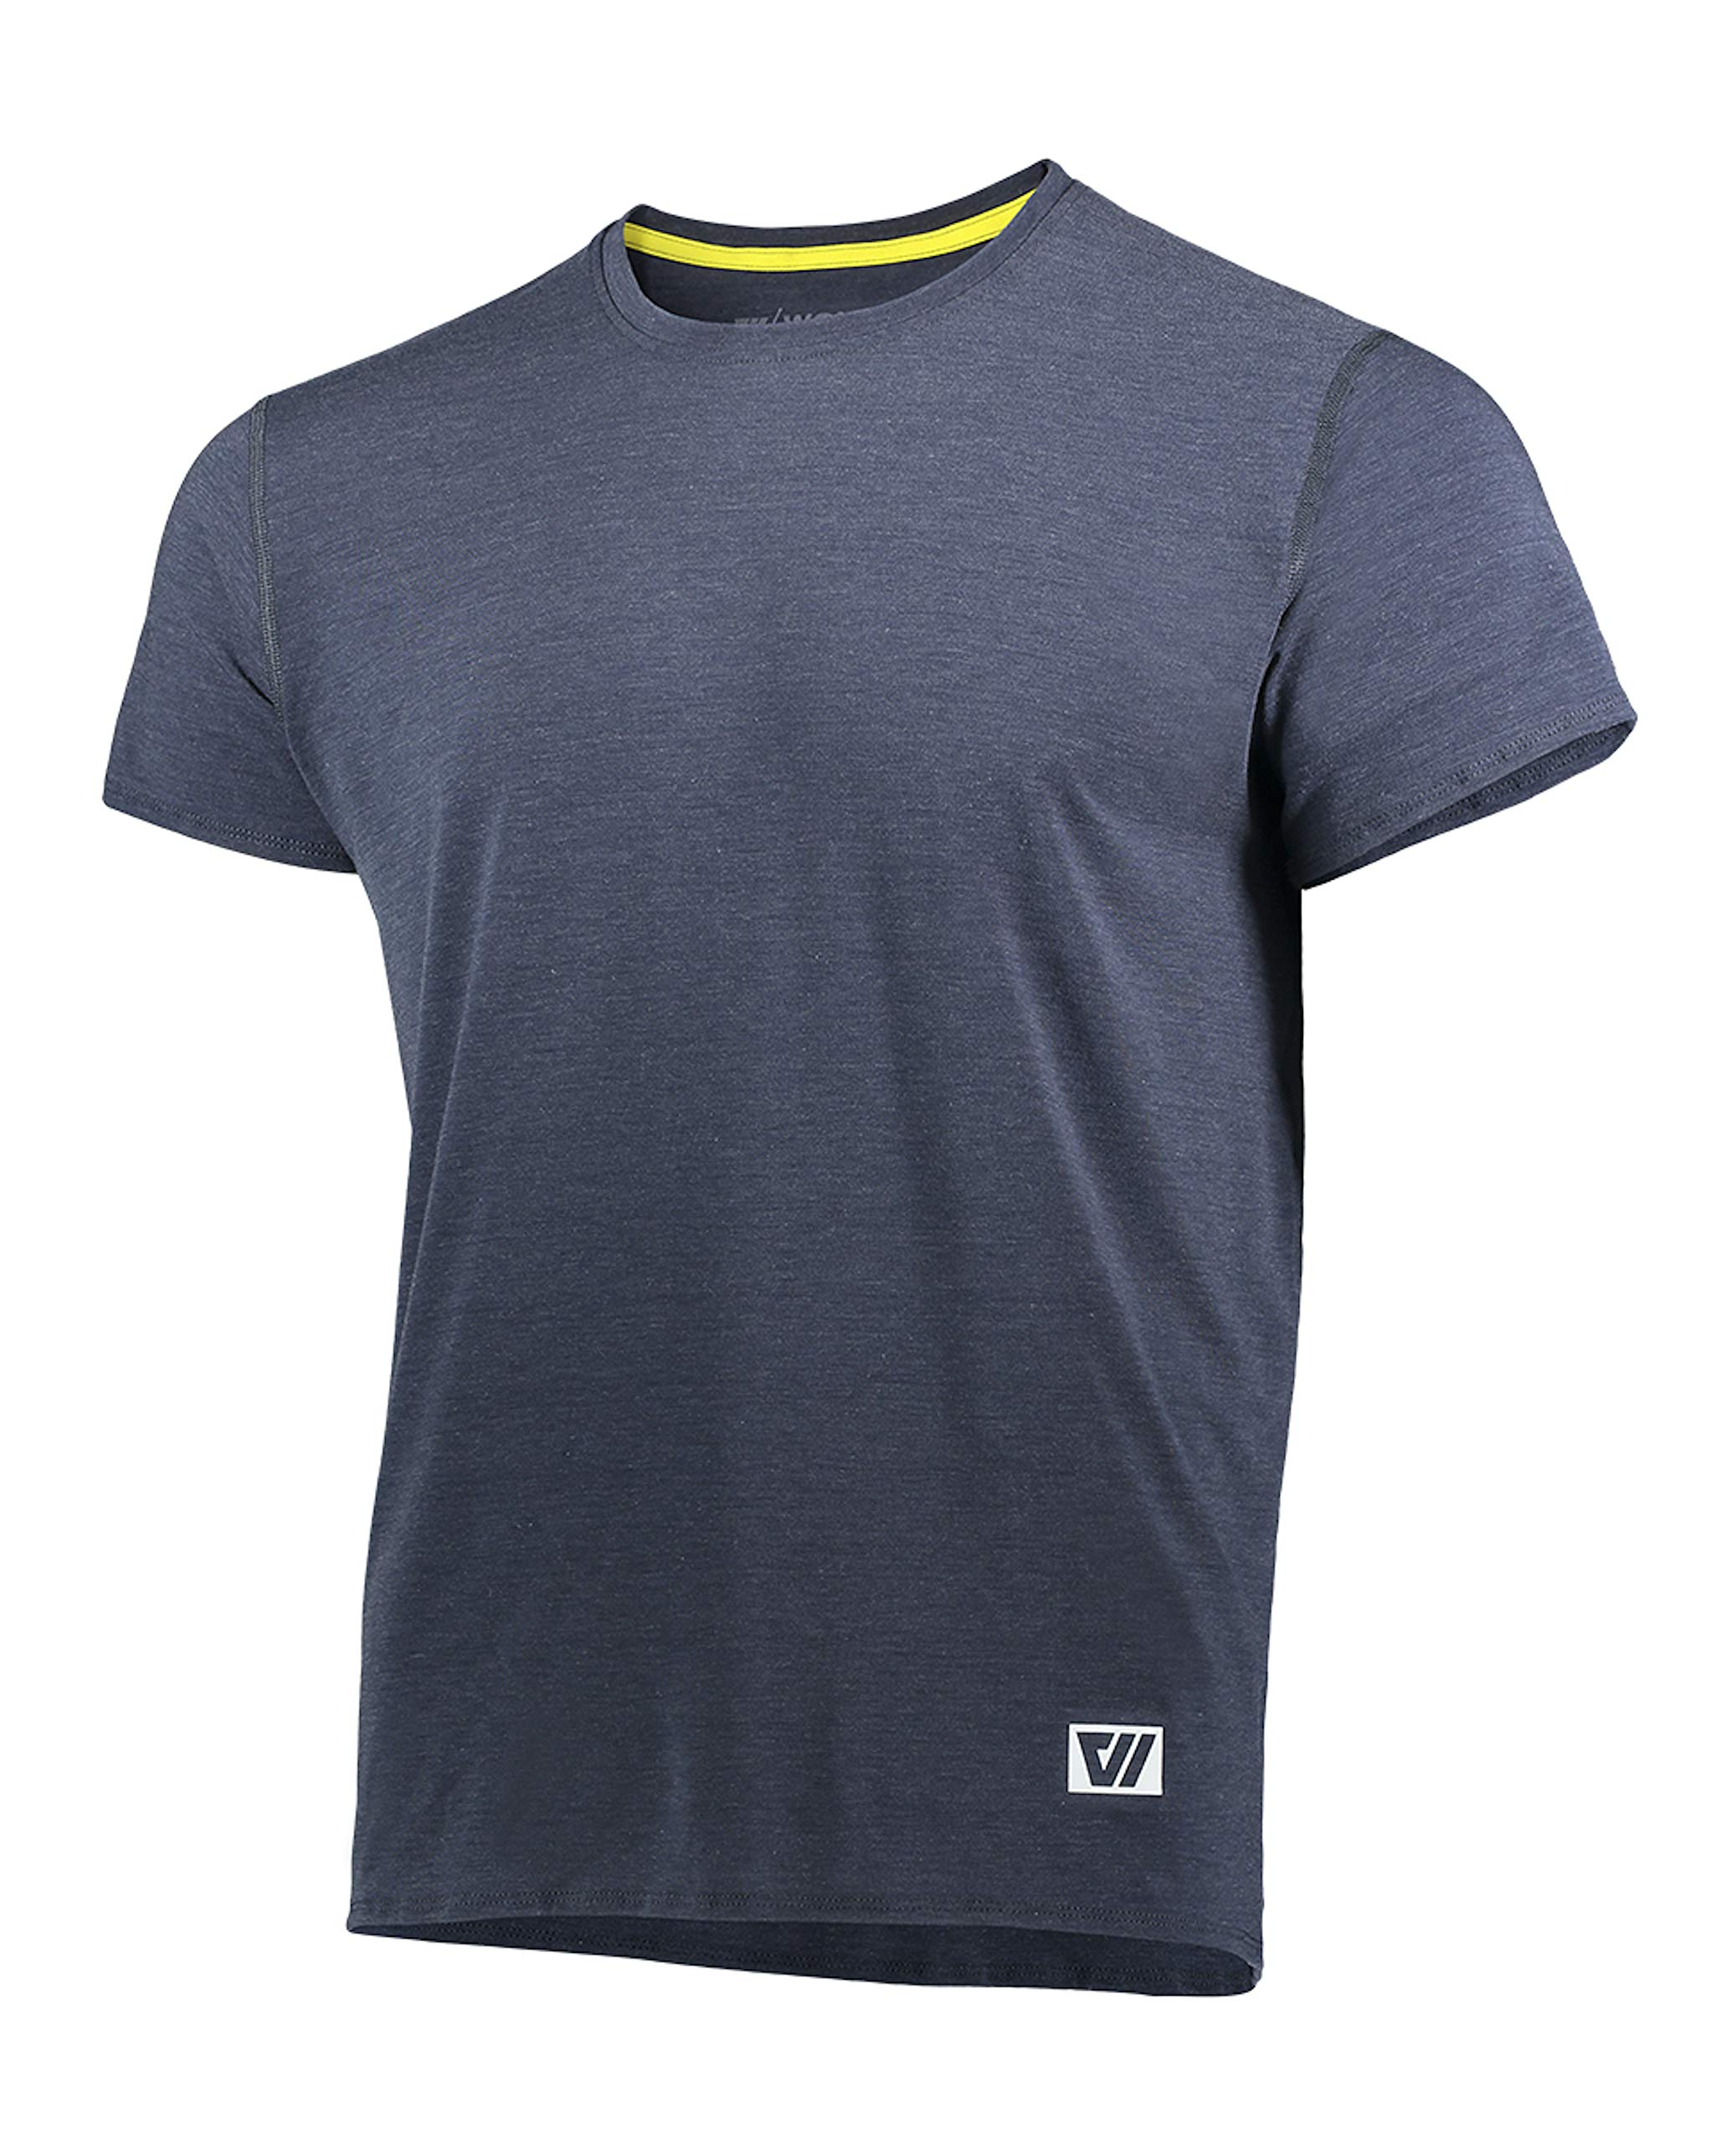 WOLACO Clinton Featherweight Technical Athletic/Performance Men's T-Shirt